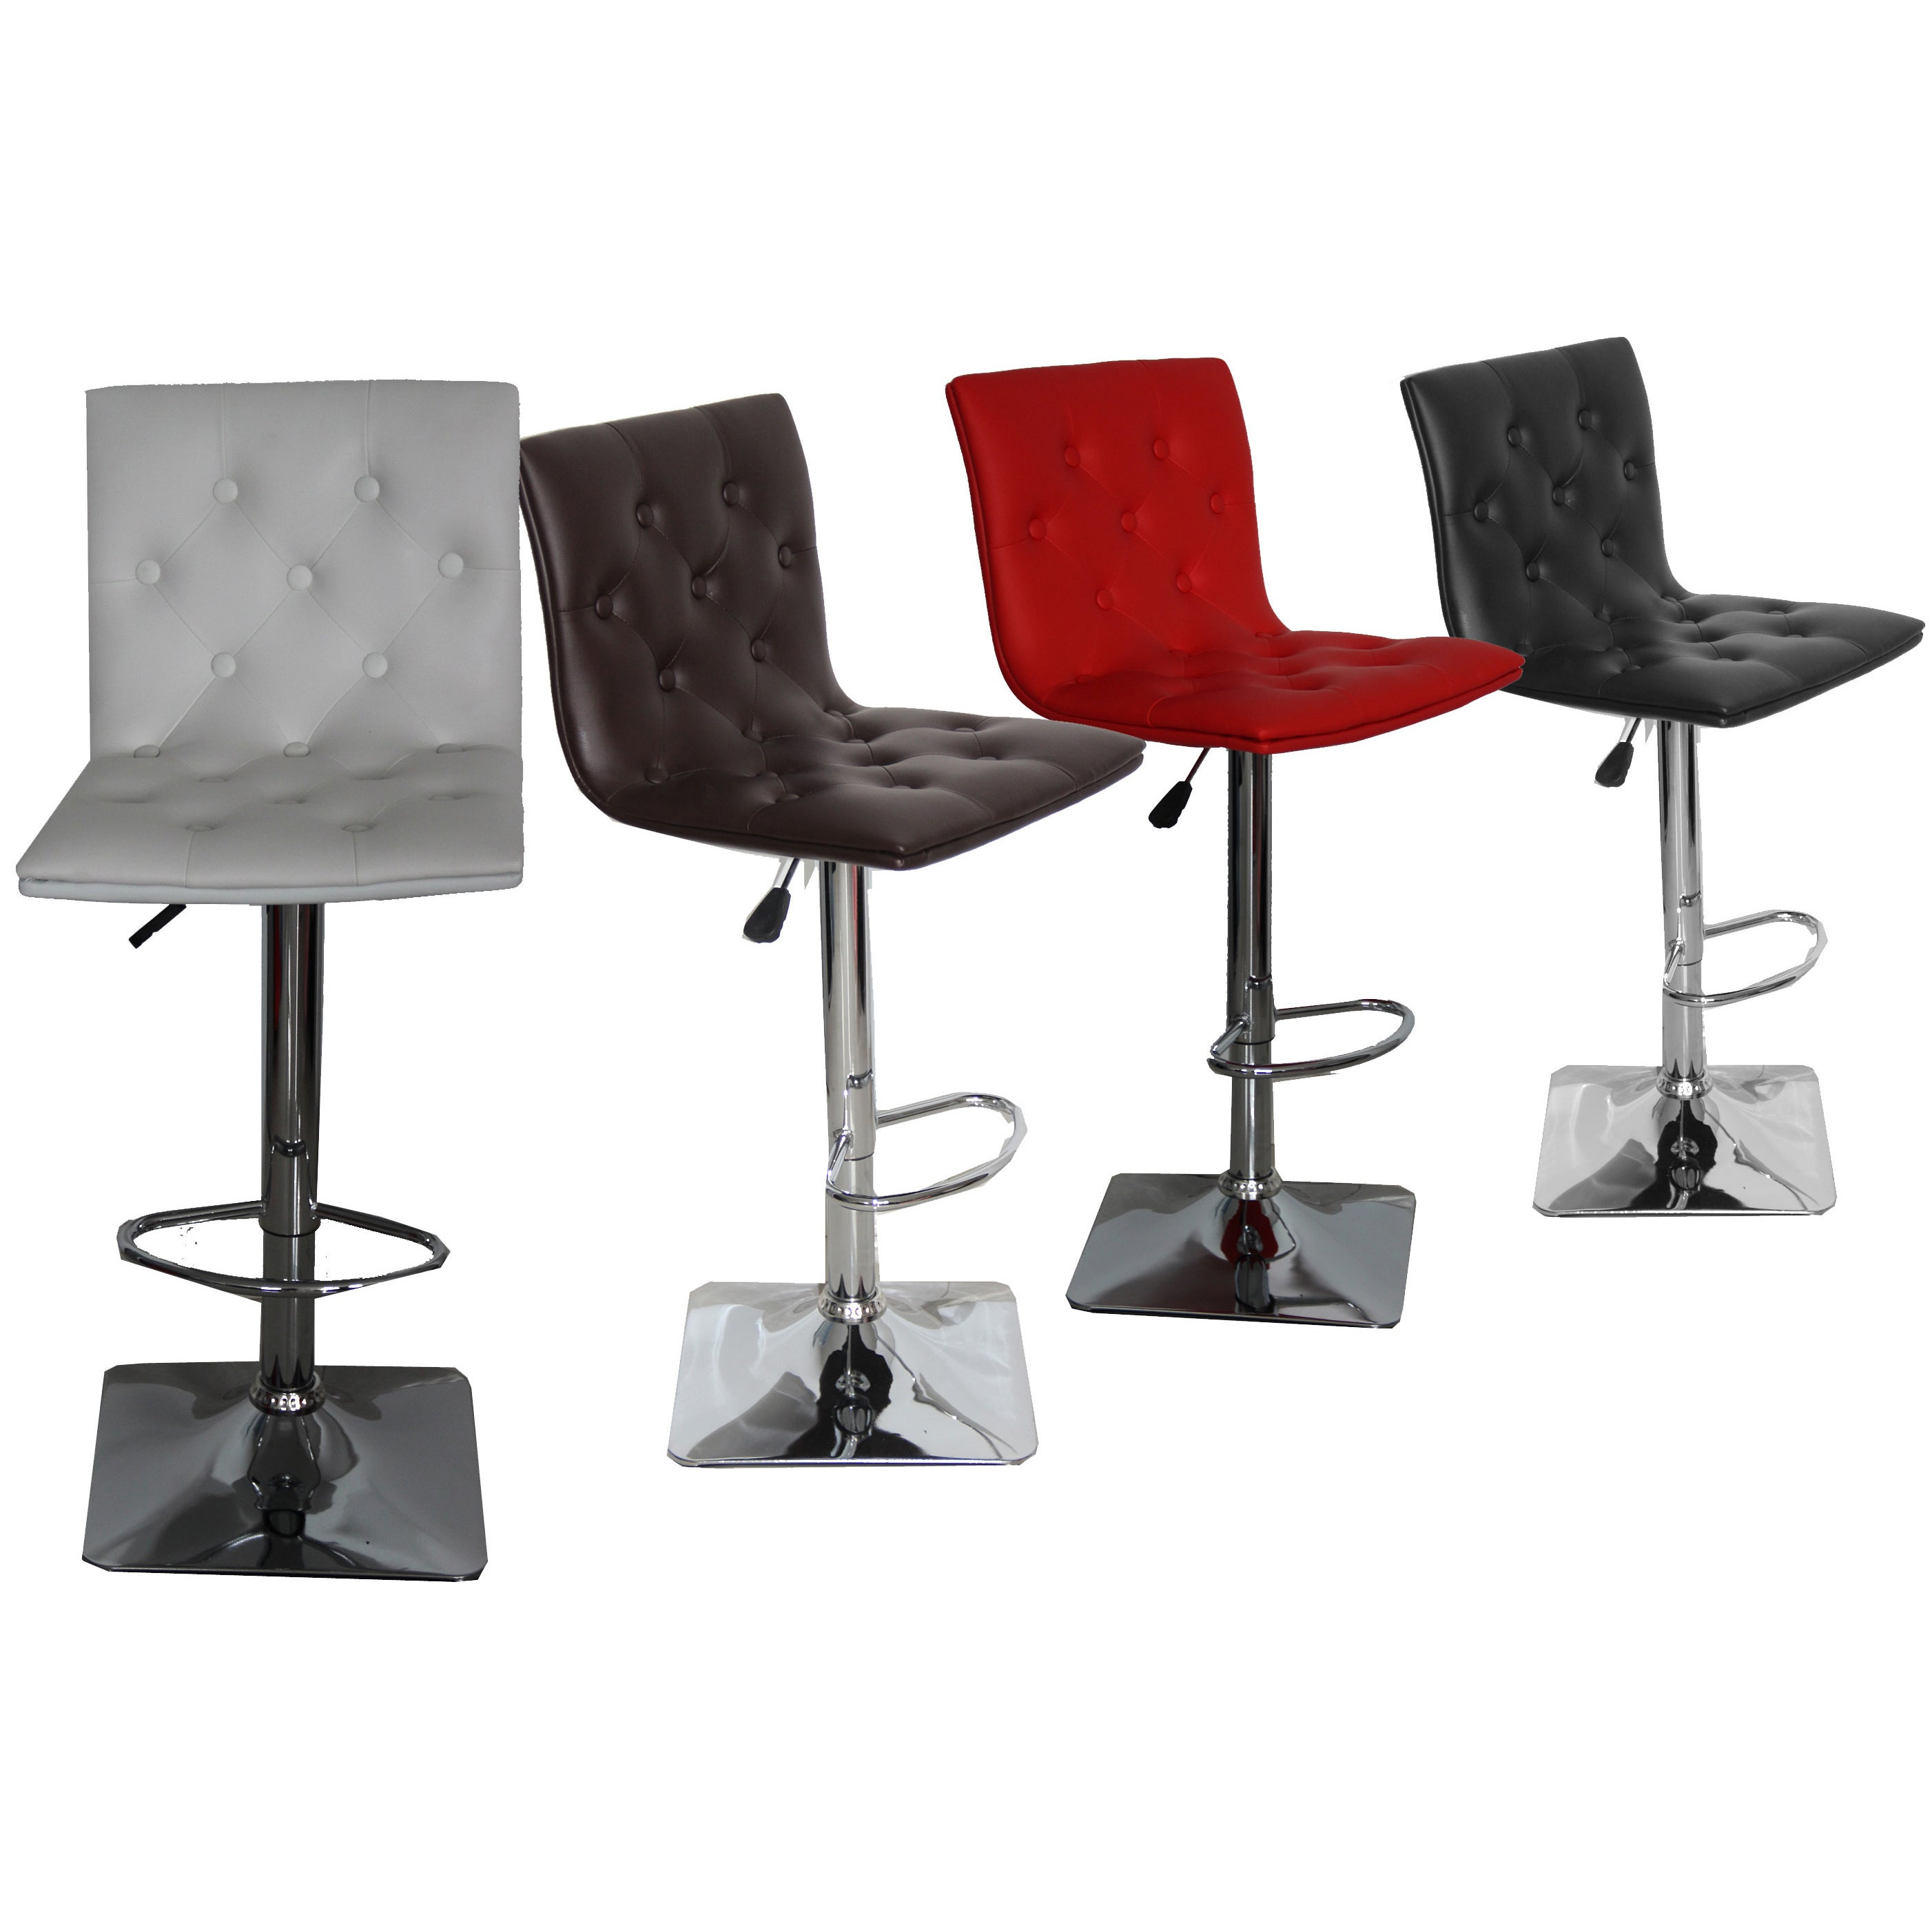 elegant pictures of bar stools overstock